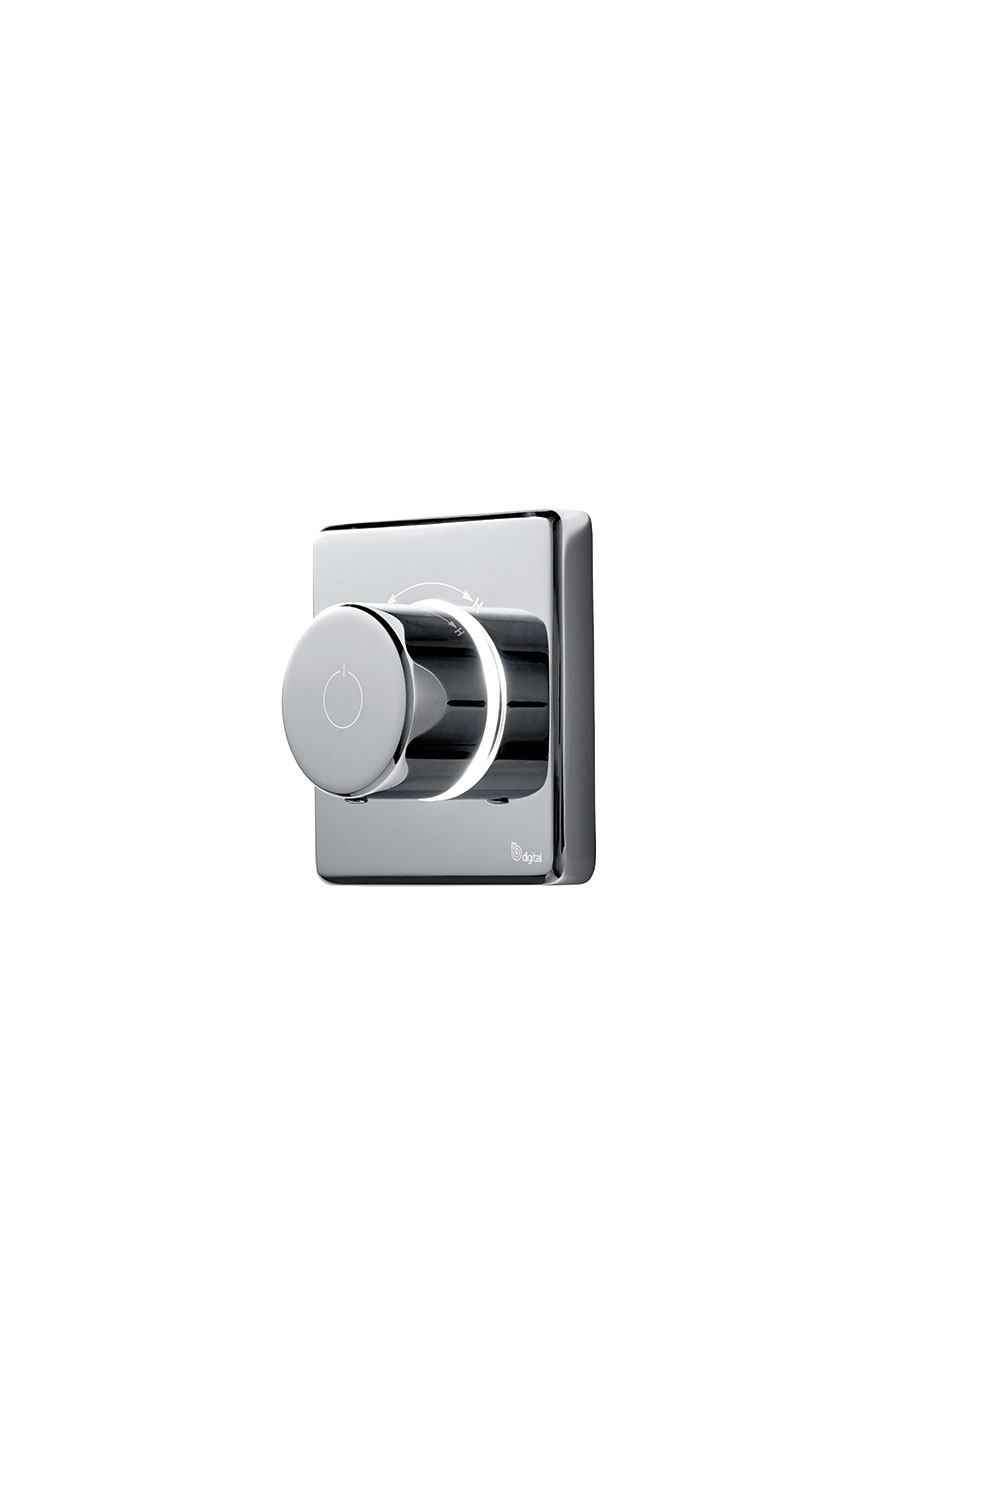 click on Single Outlet Digital Shower Valve image to enlarge